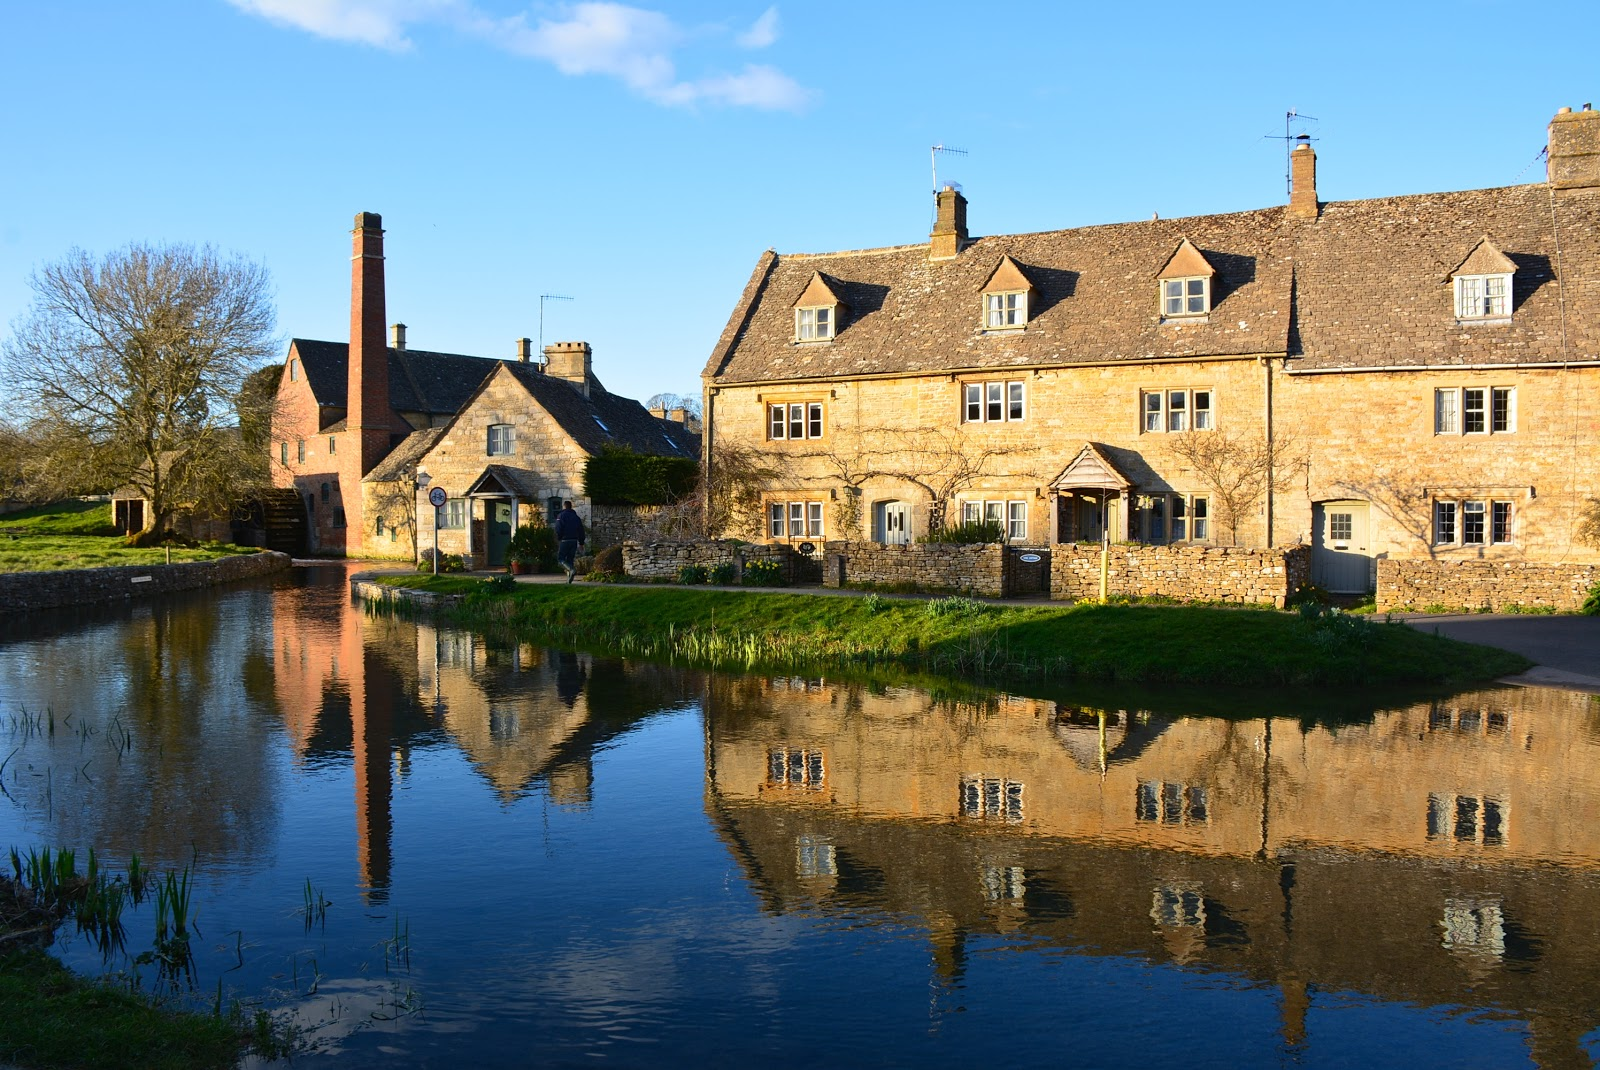 Lower Slaughter along the River Eye